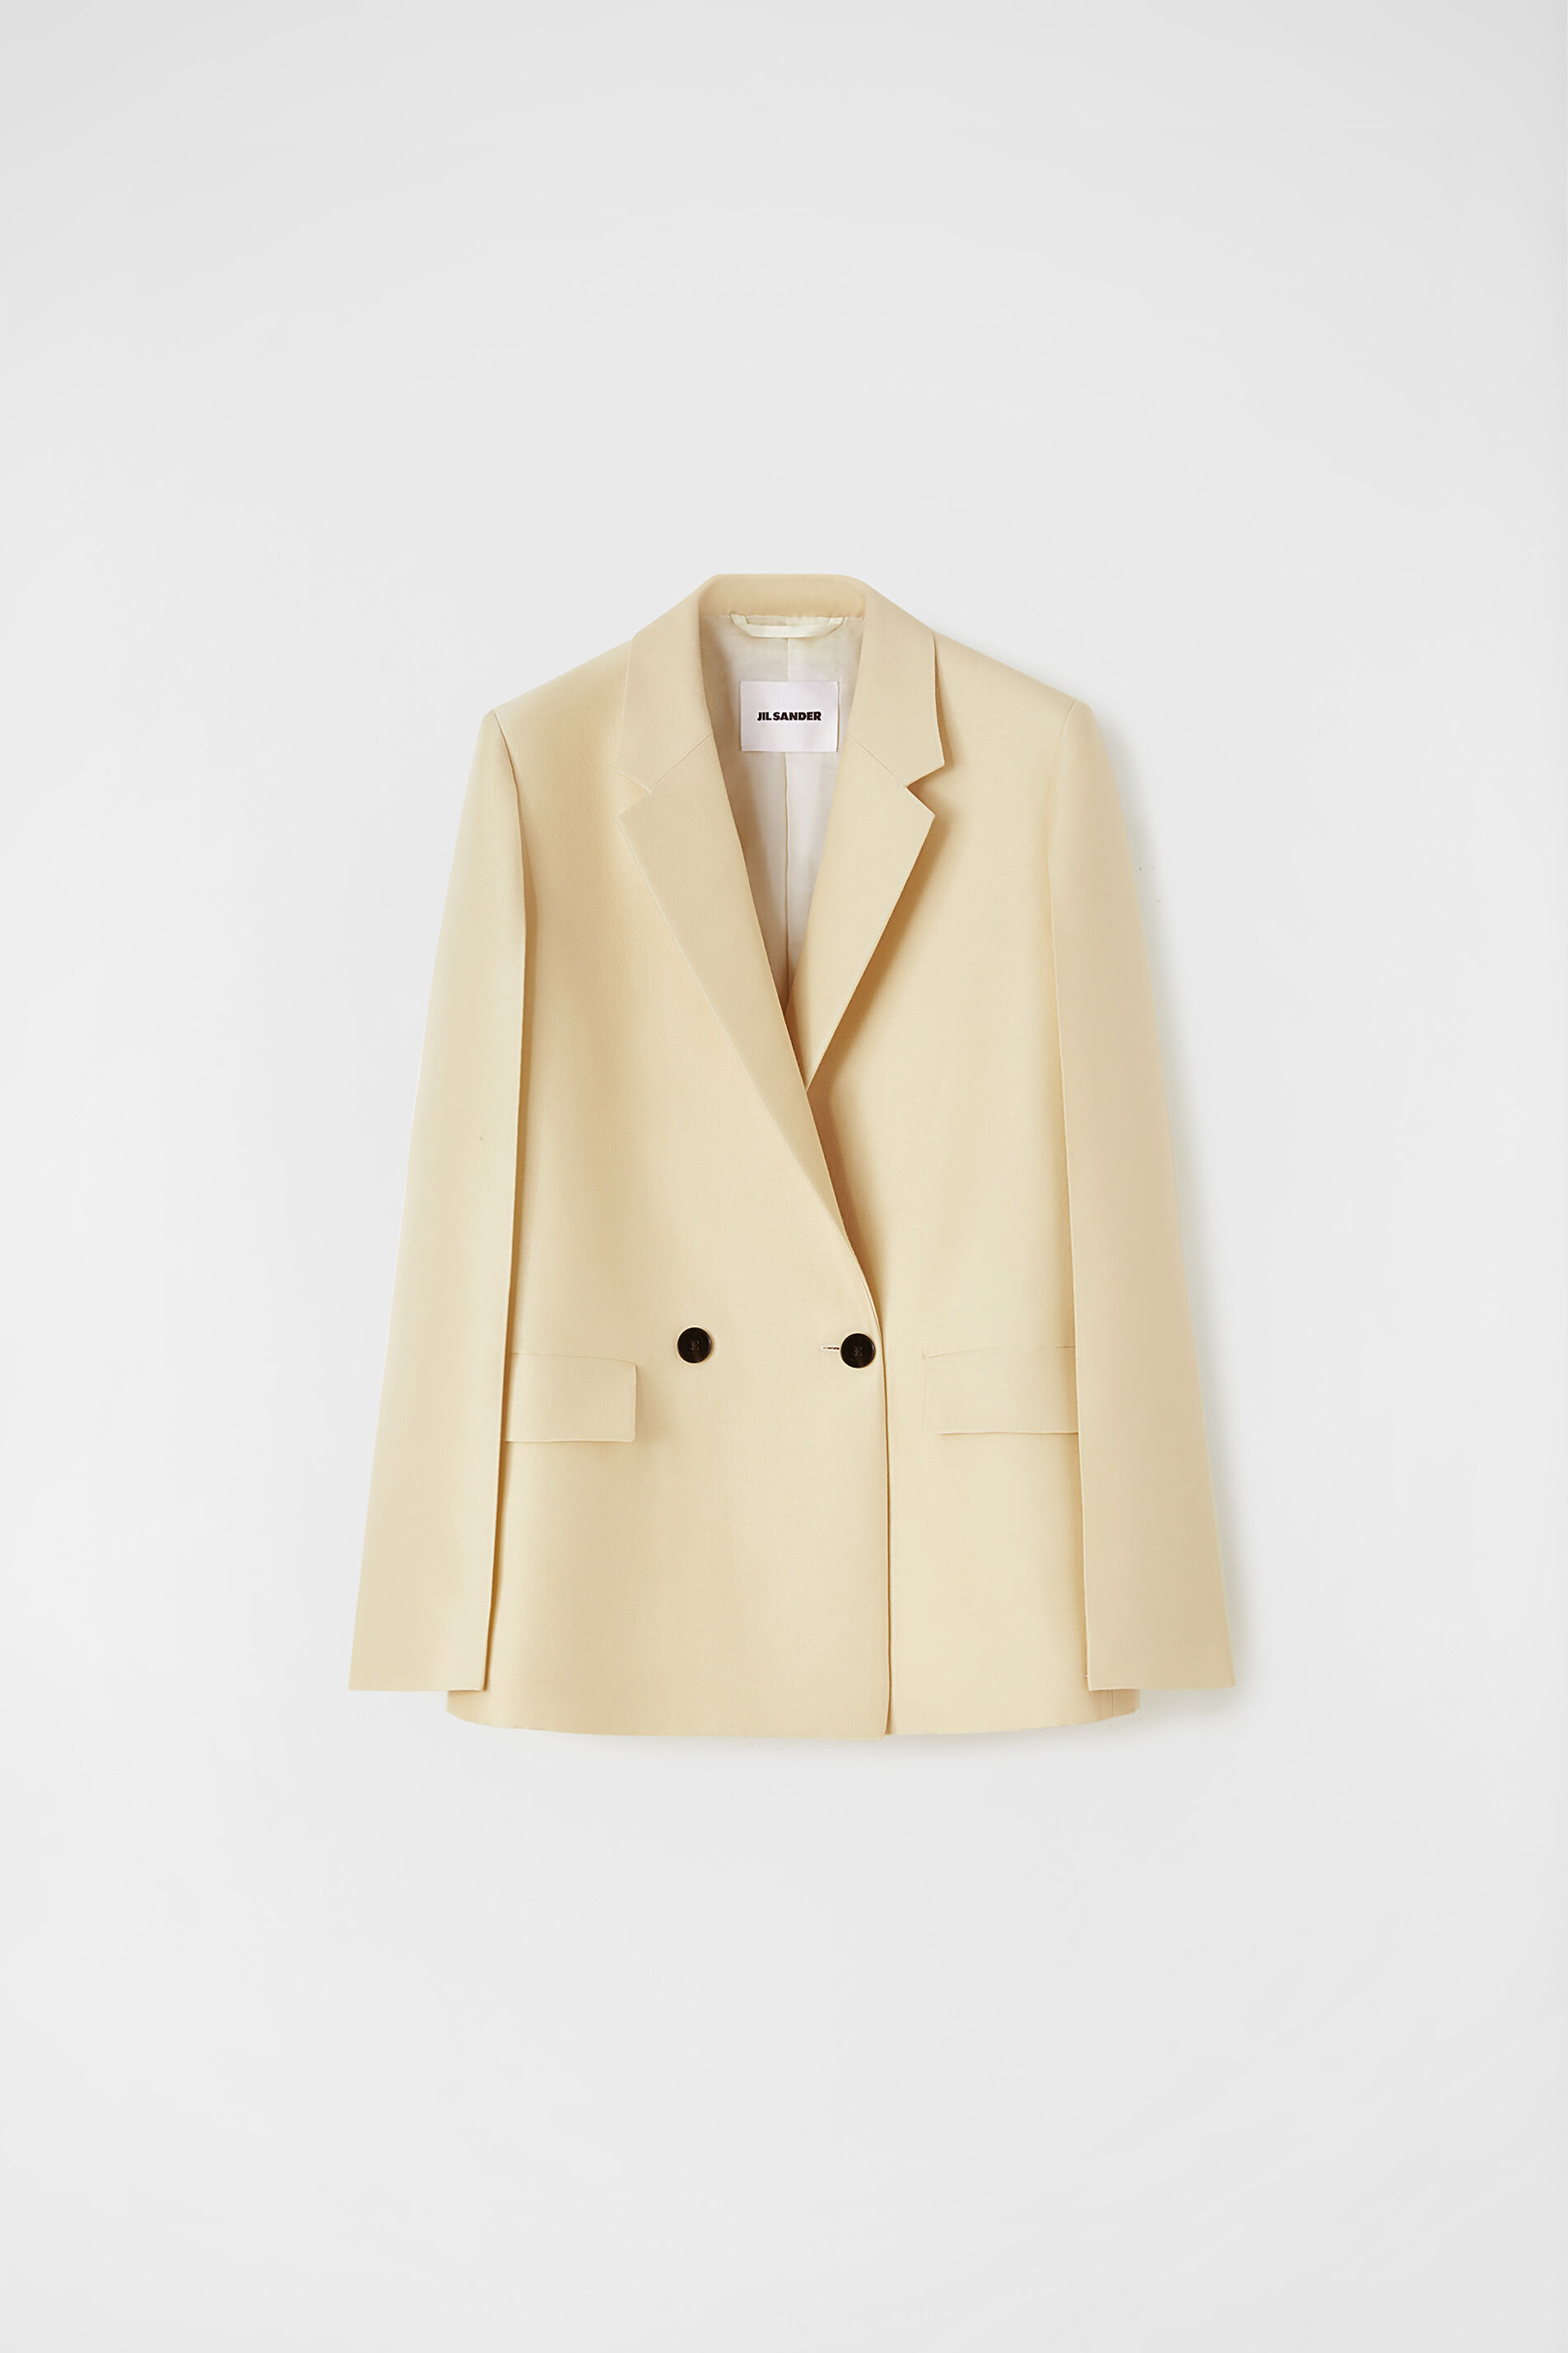 Tailored Jacket, natural, large